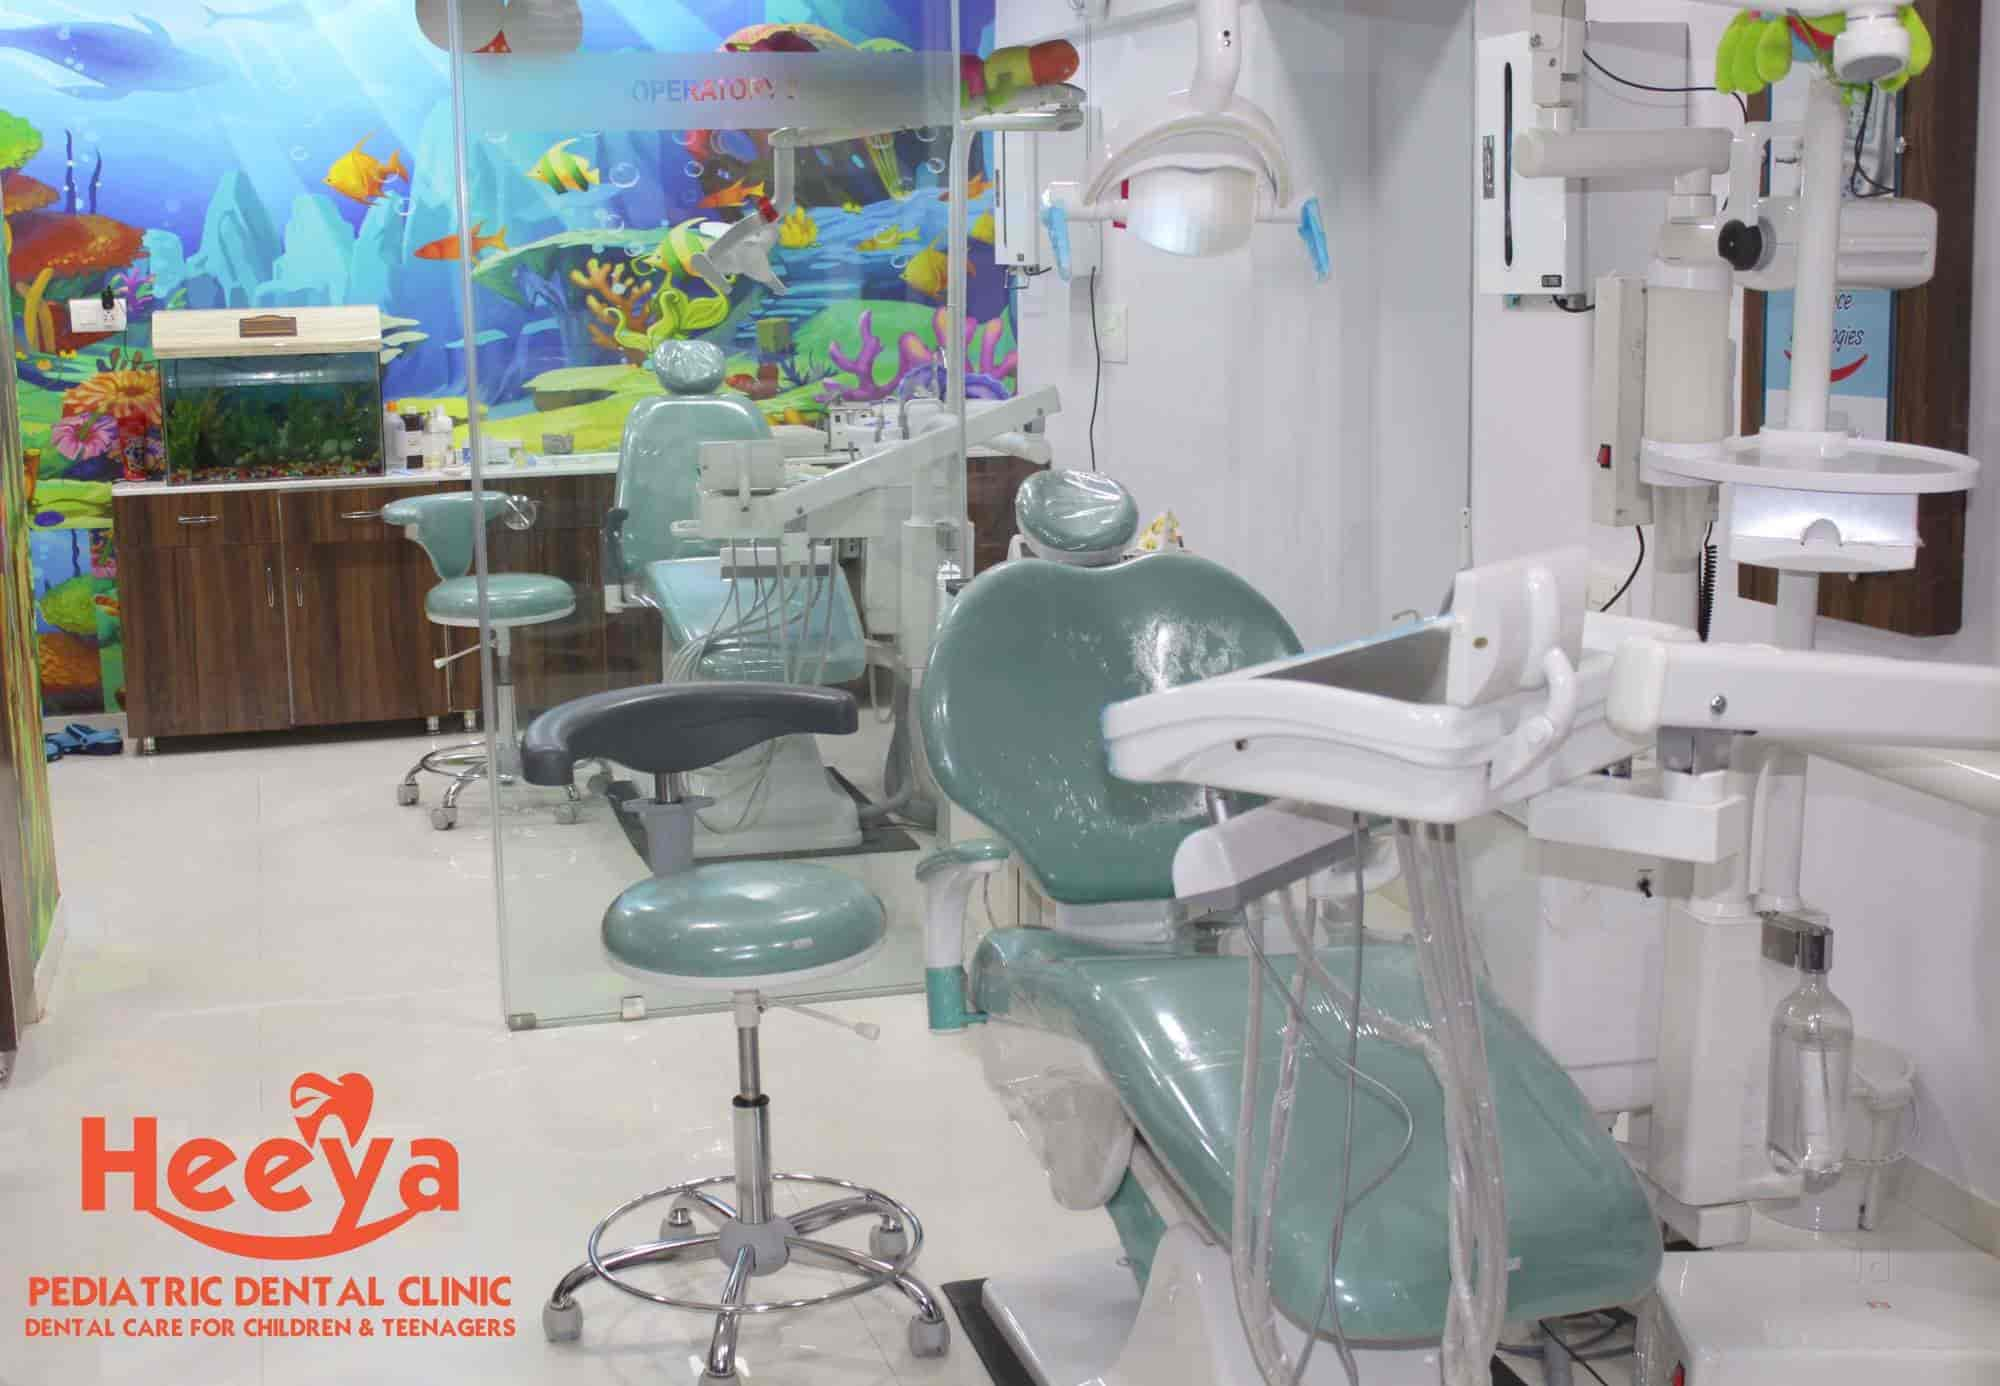 Heeya Pediatric Dental Clinic - Dentists - Book Appointment